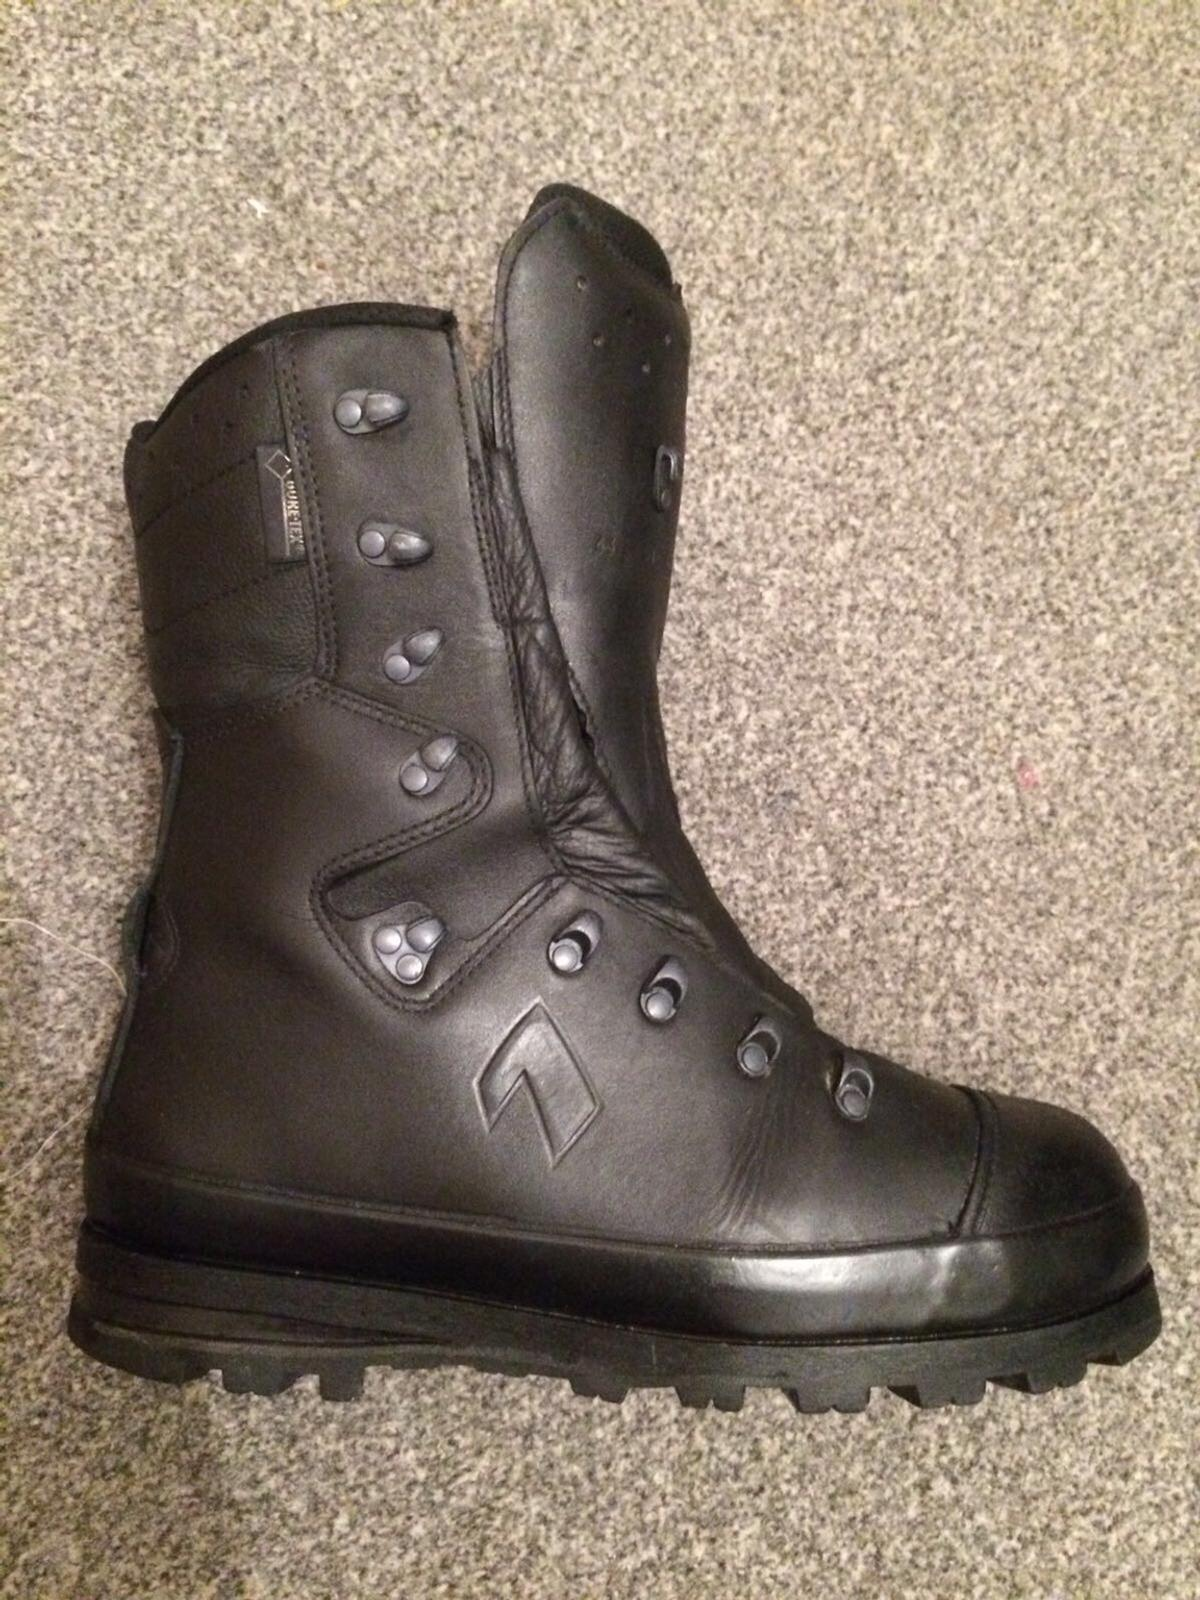 26170cbf8fa Haix Tibet forest chainsaw groundwork boots in ST5-Lyme for £40.00 ...